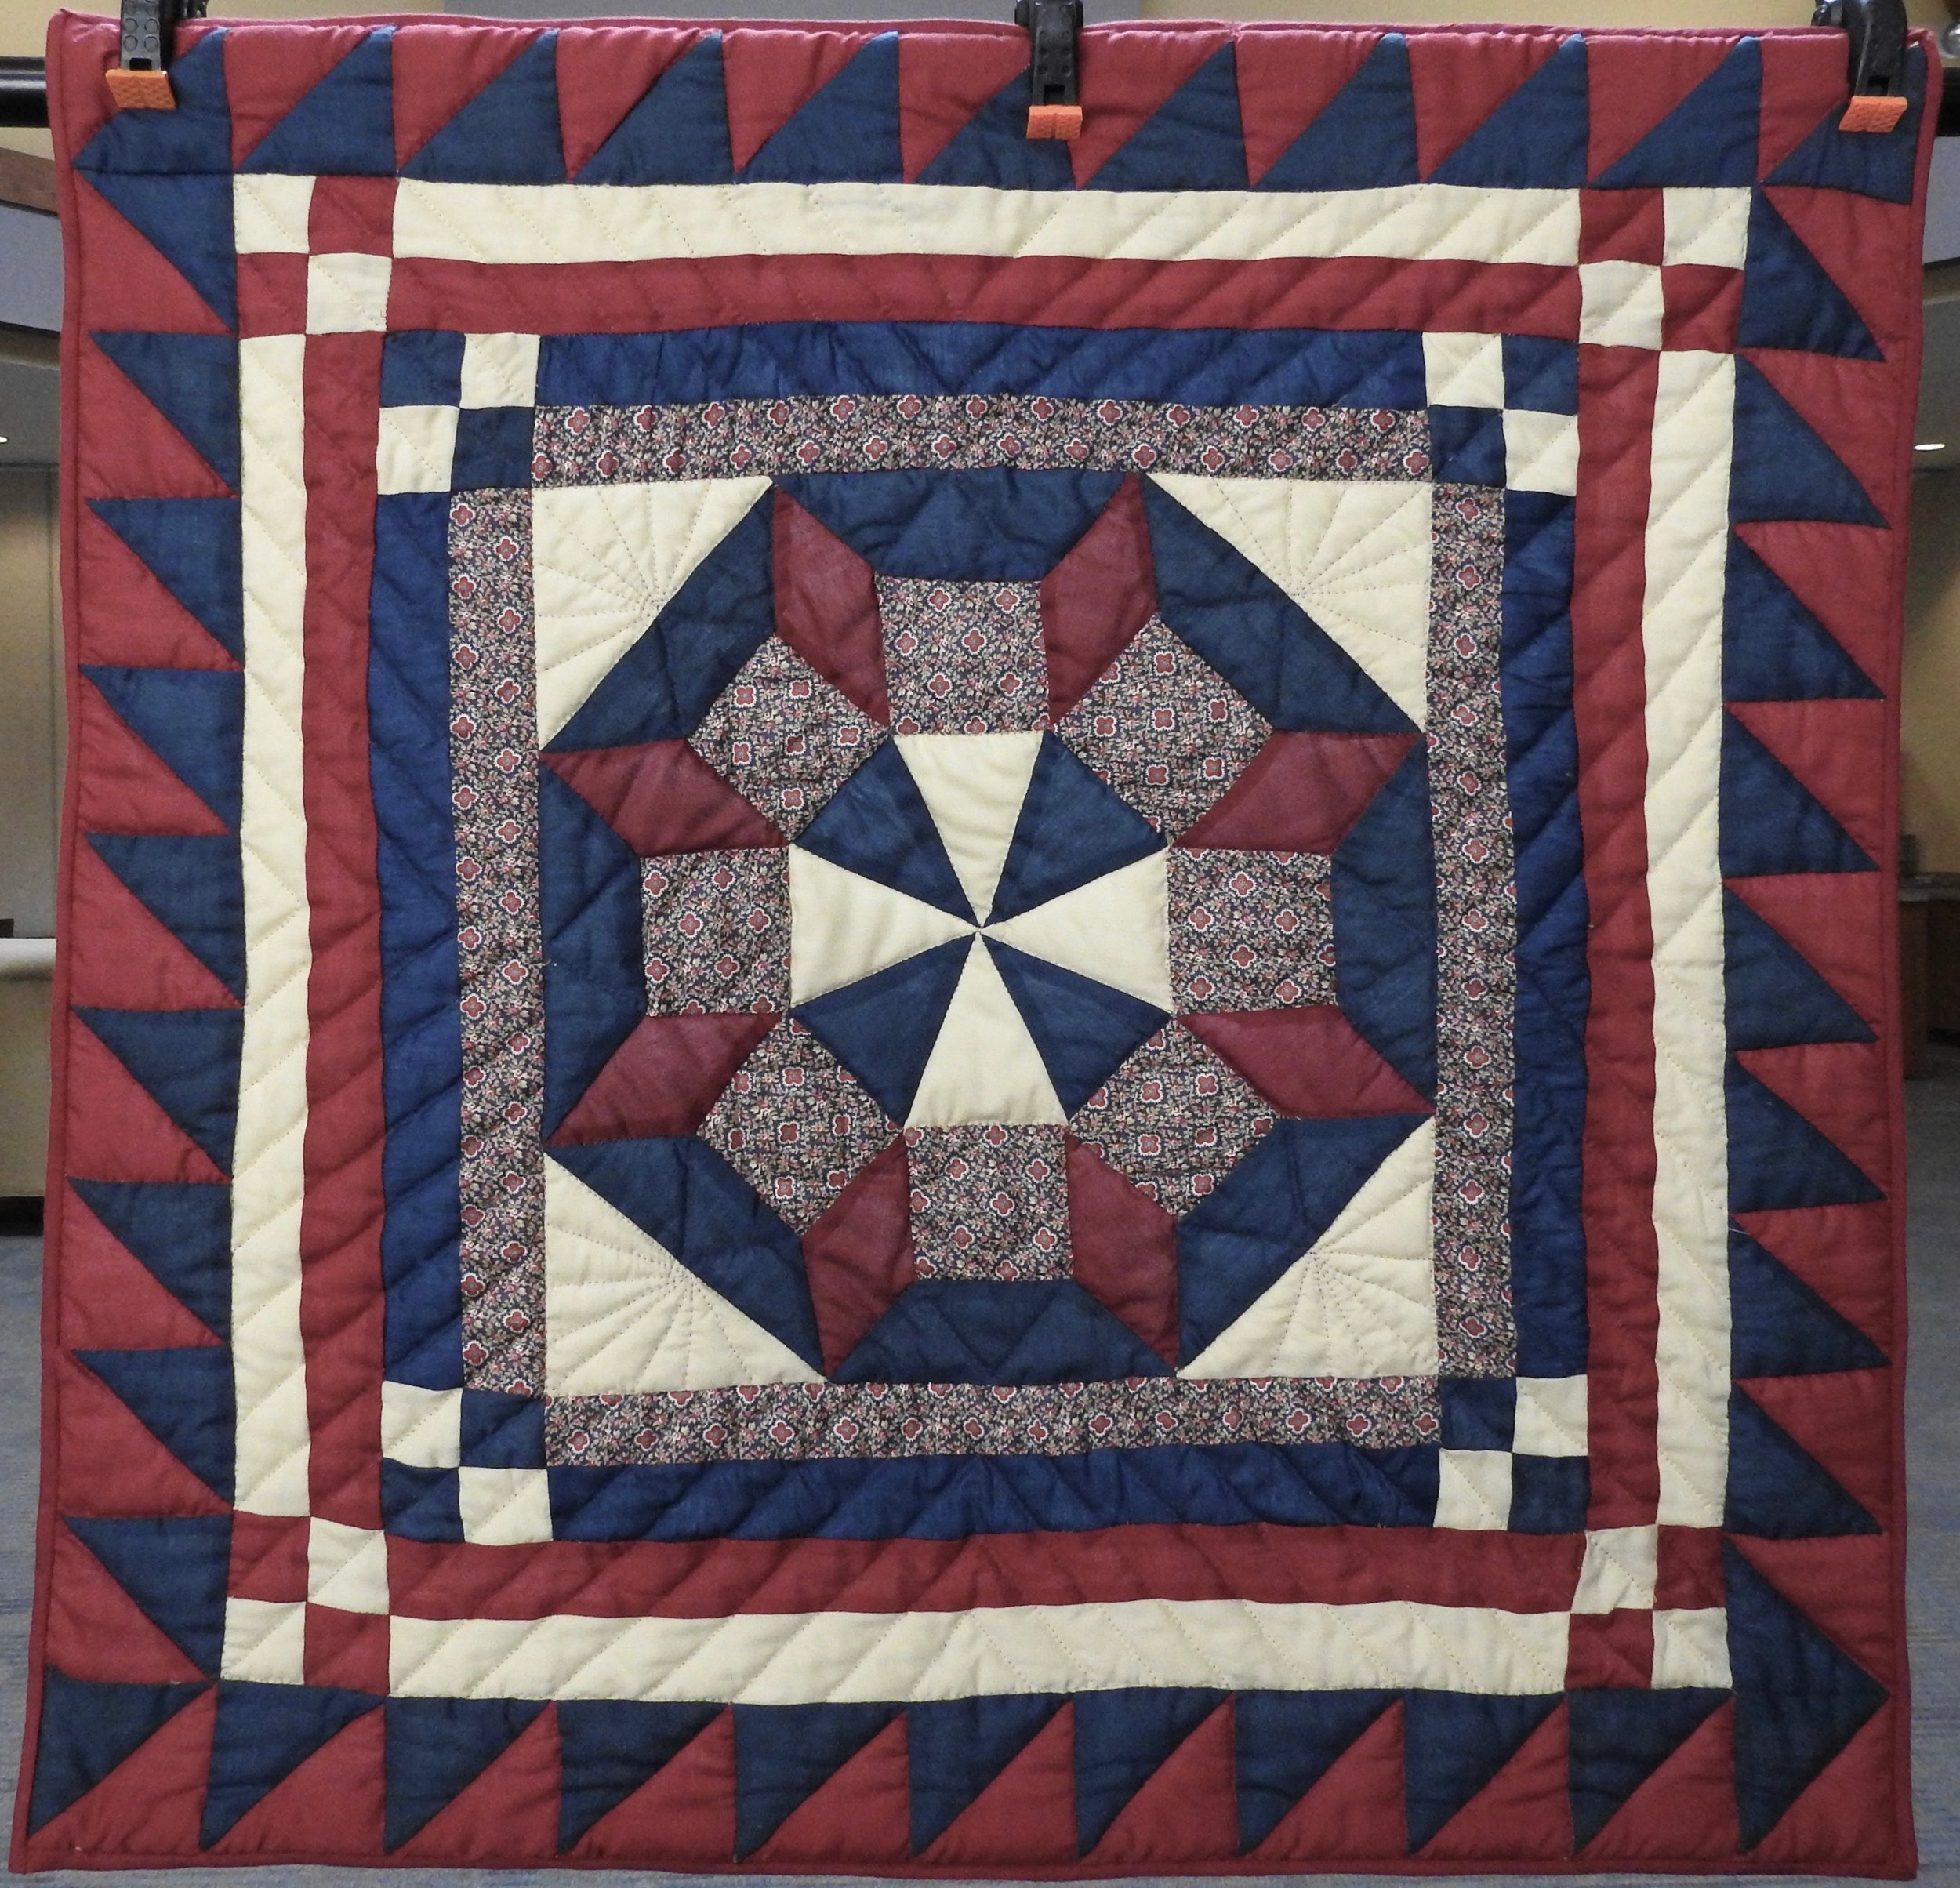 My Castle's Wall, Pieced & Hand Quilted by Helen Leichty, donated by Genny Schwartzentruber, 31 x 31""